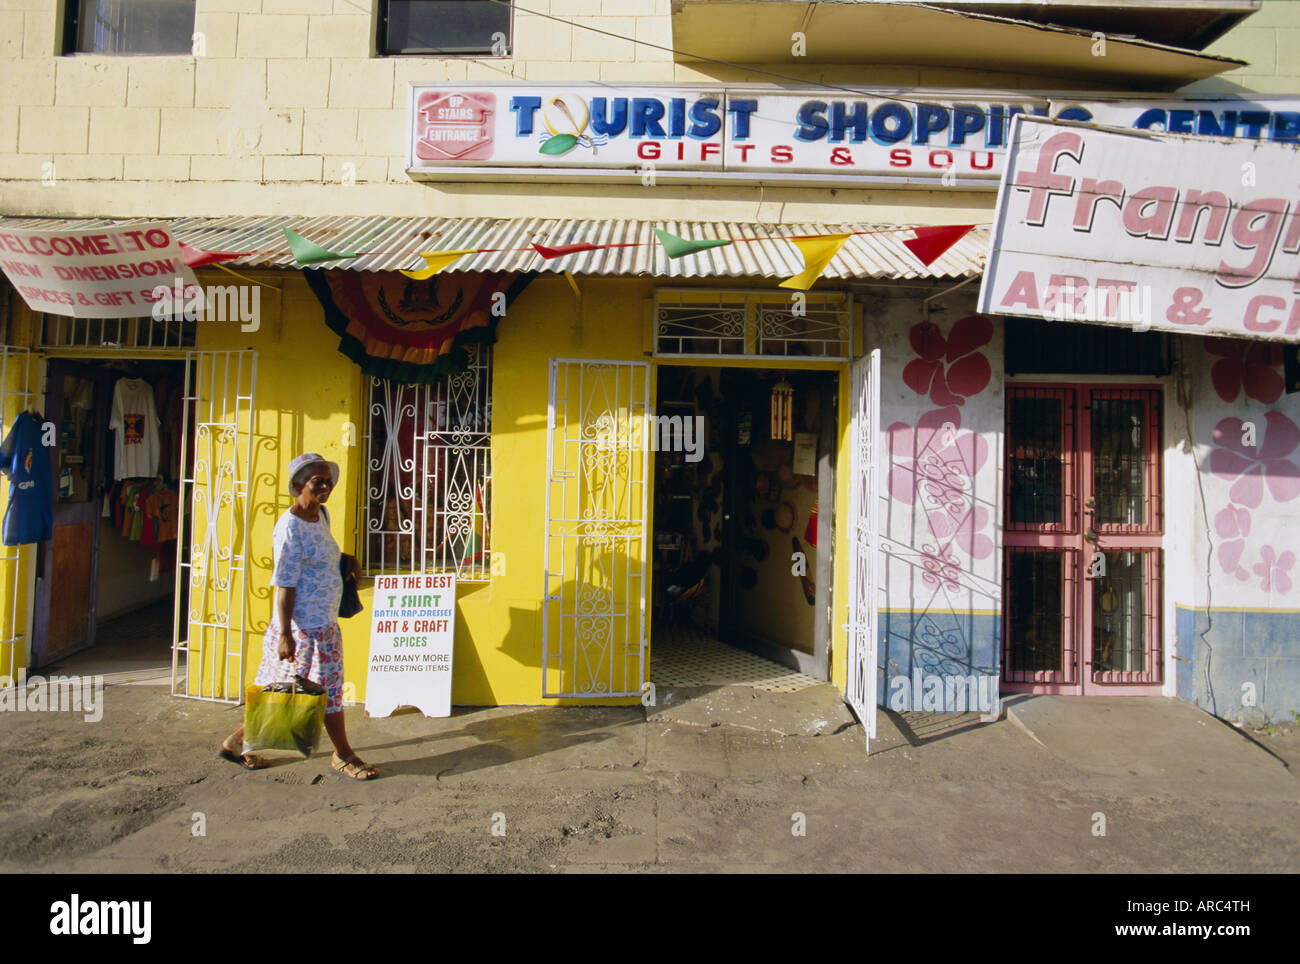 Shop fronts, St. George's, Grenada, Windward Islands, West Indies, Caribbean, Central America - Stock Image